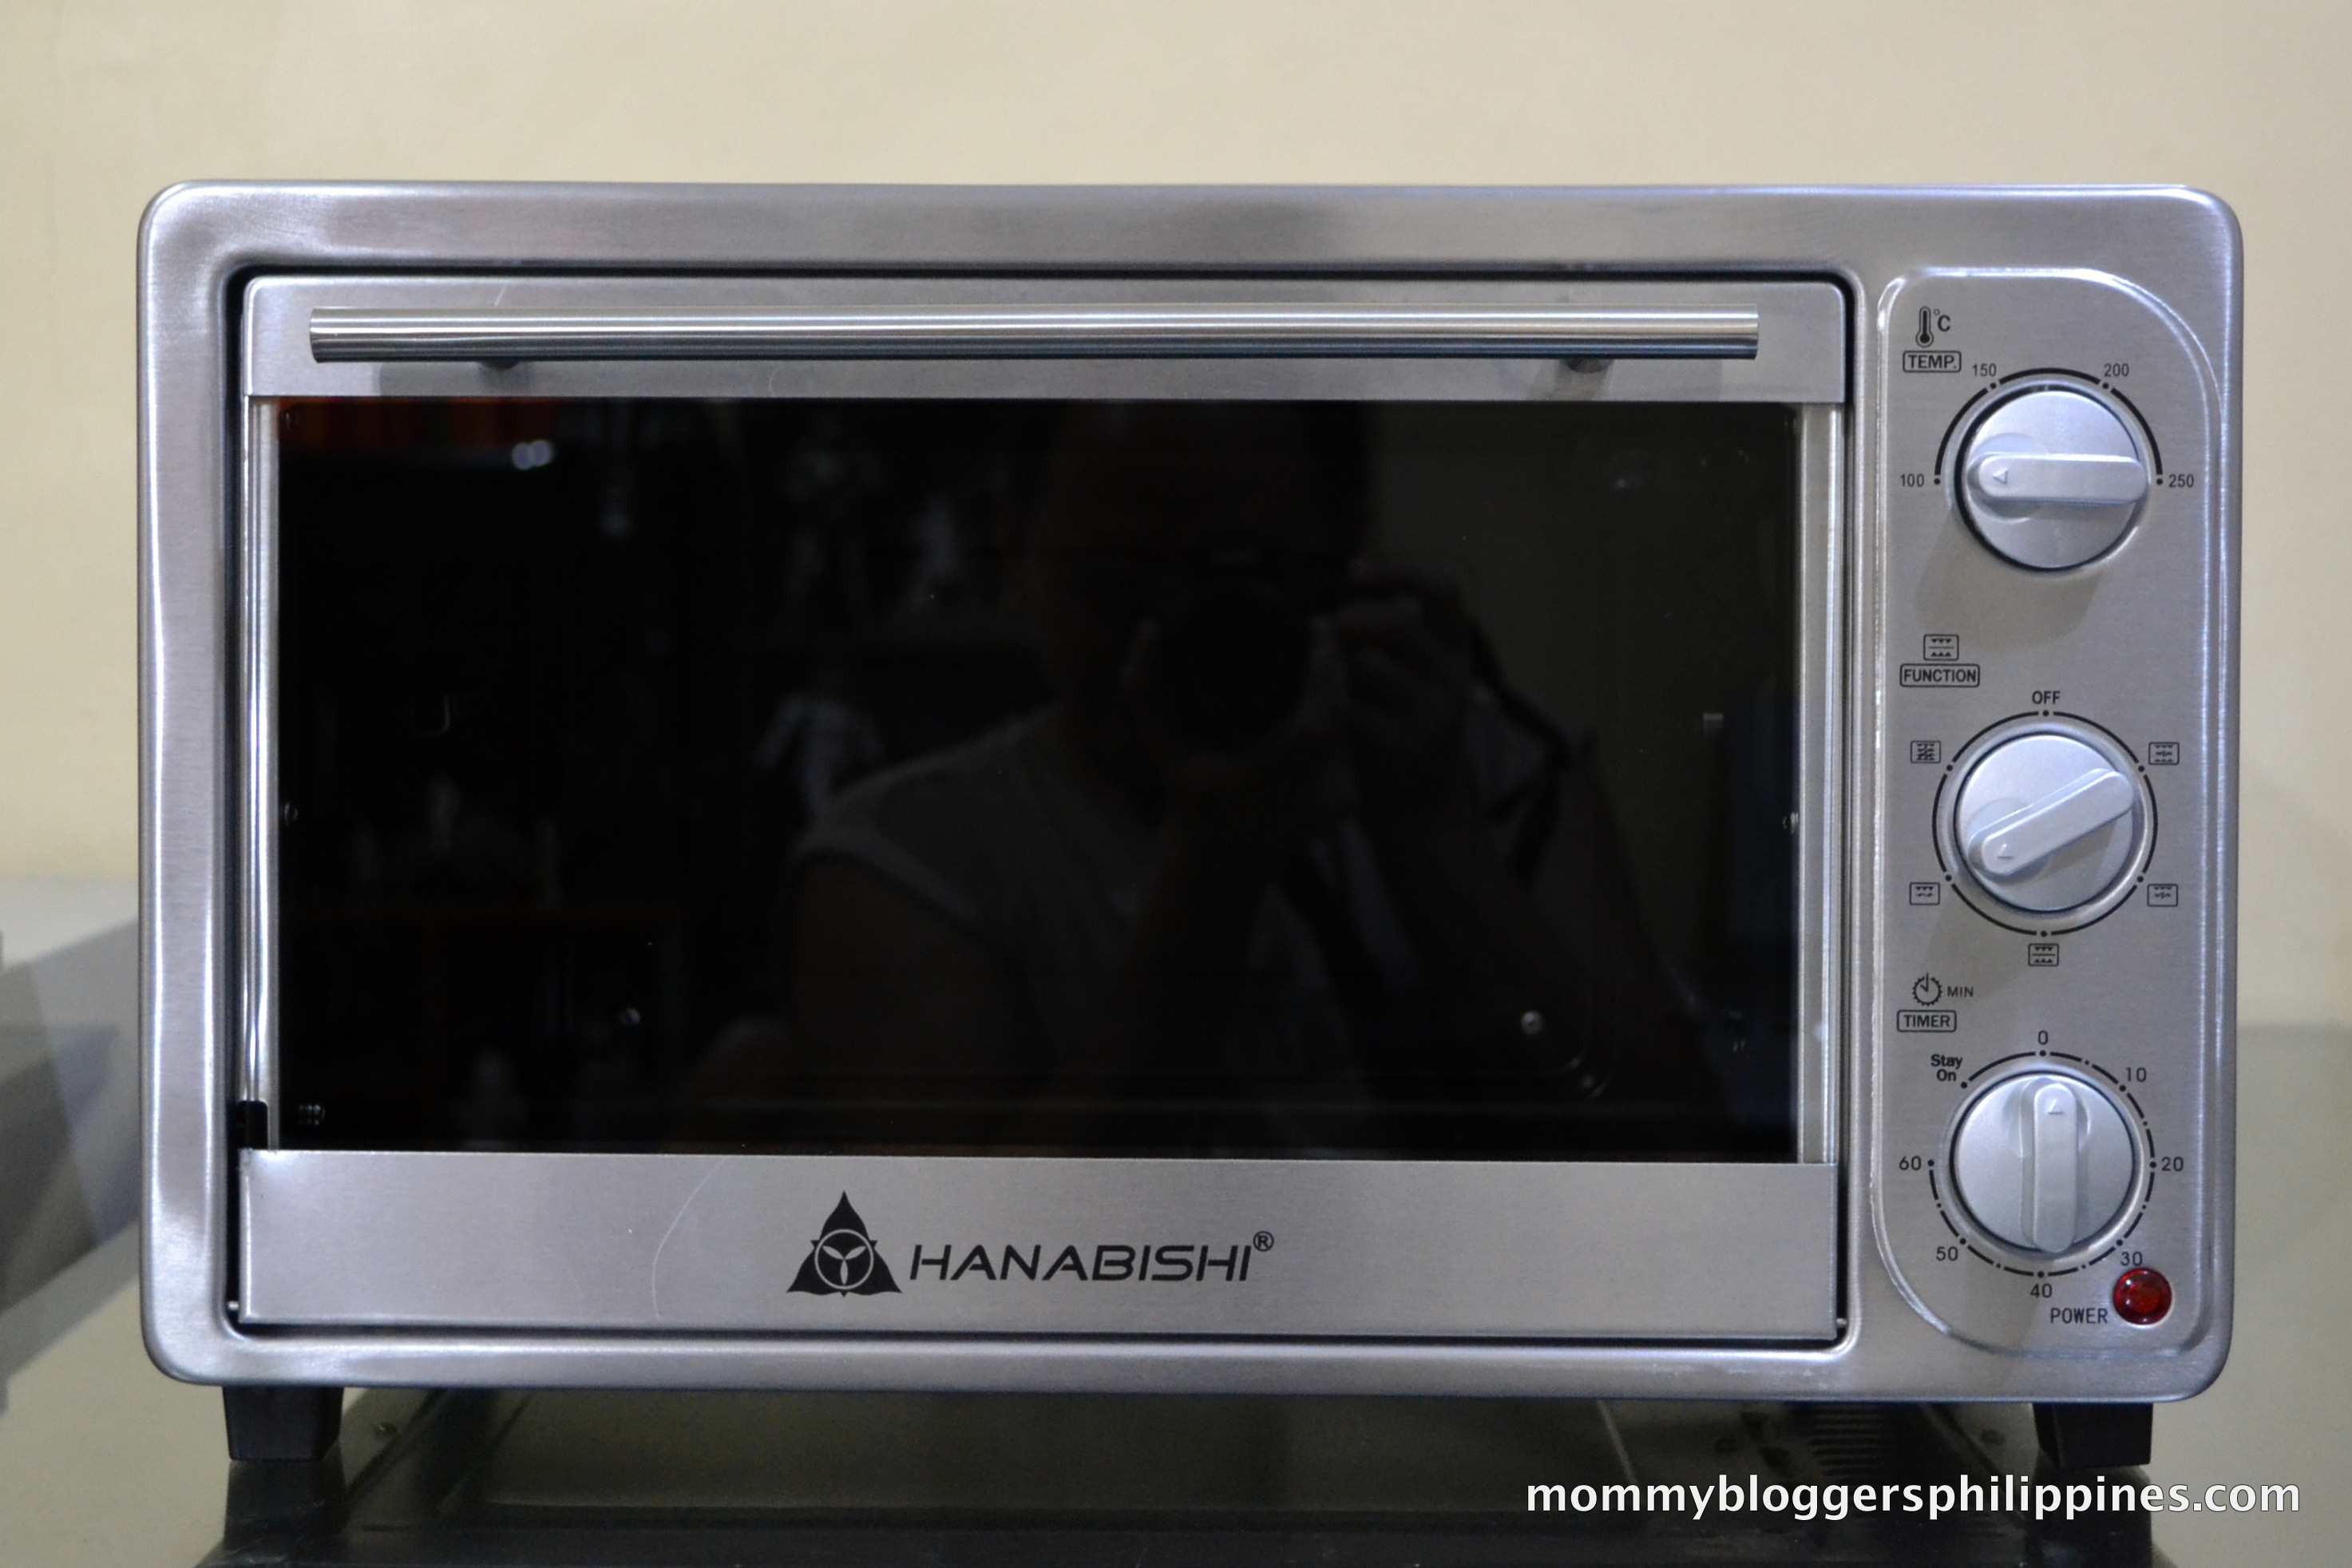 Hanabishi Stainless Steel Electric Oven